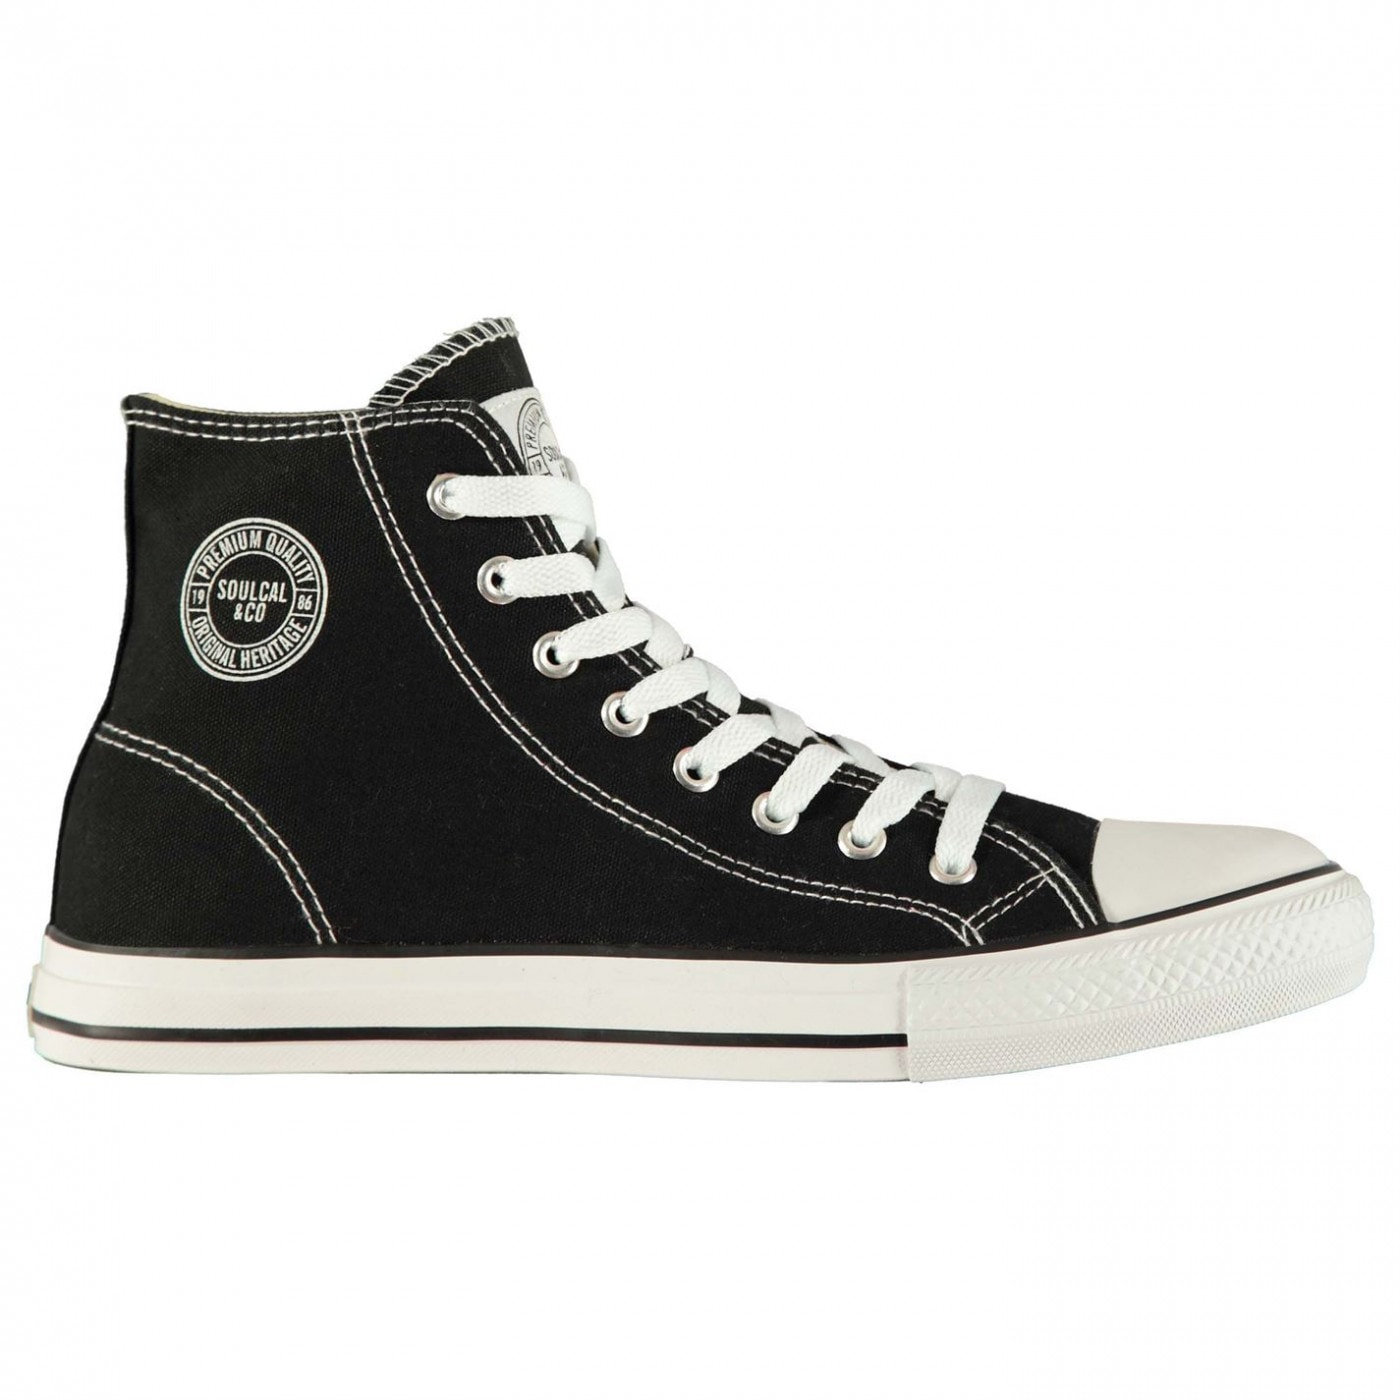 Men's trainers SoulCal Canvas High